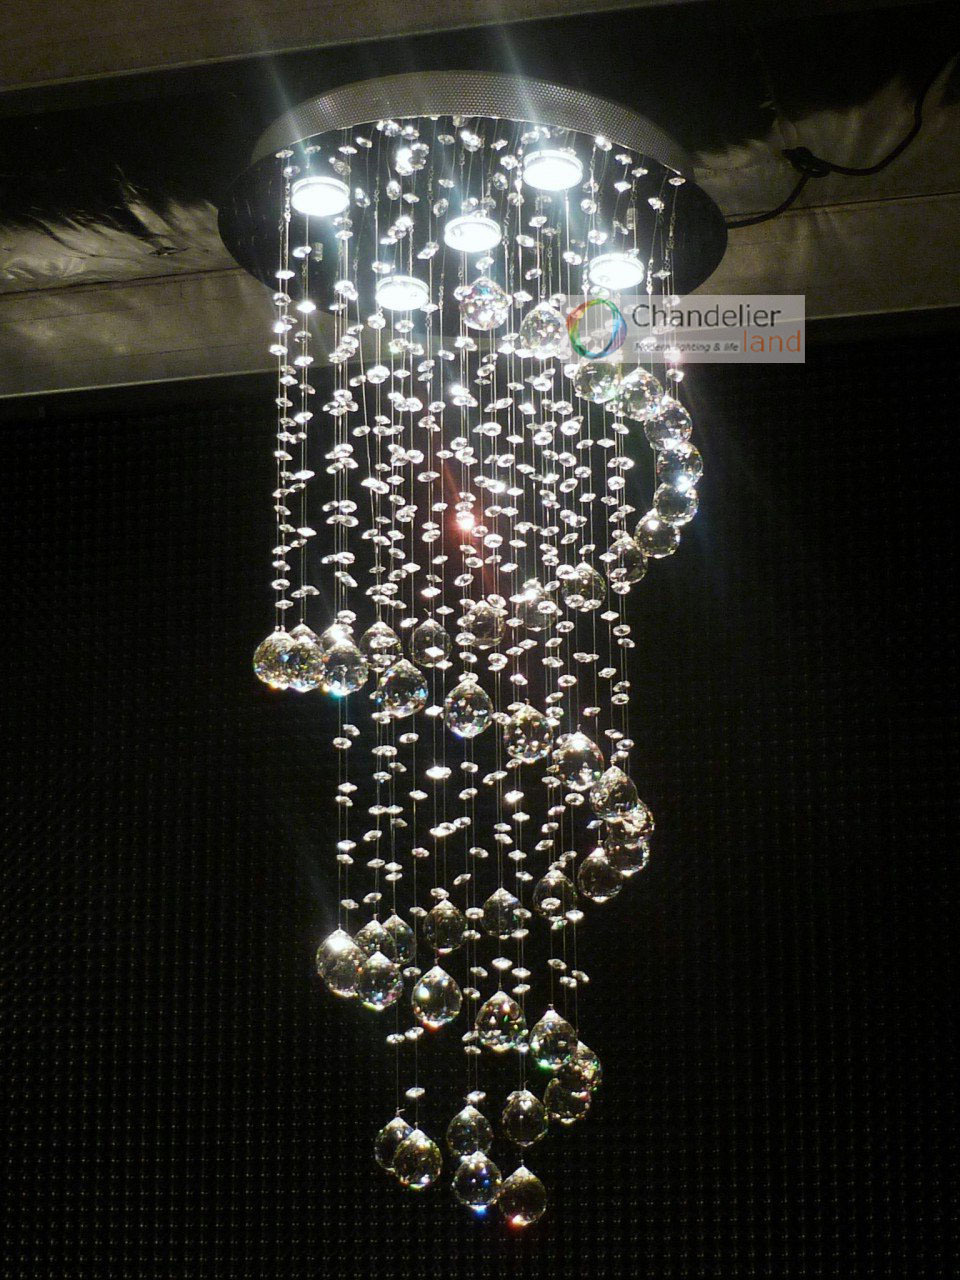 5 lights w157 x h40 new clear crystal chandelier spiral pendant 5 lights w157 x h40 new clear crystal chandelier spiral pendant lamp rain drop design led flush mount lighting in chandeliers from lights lighting on arubaitofo Gallery